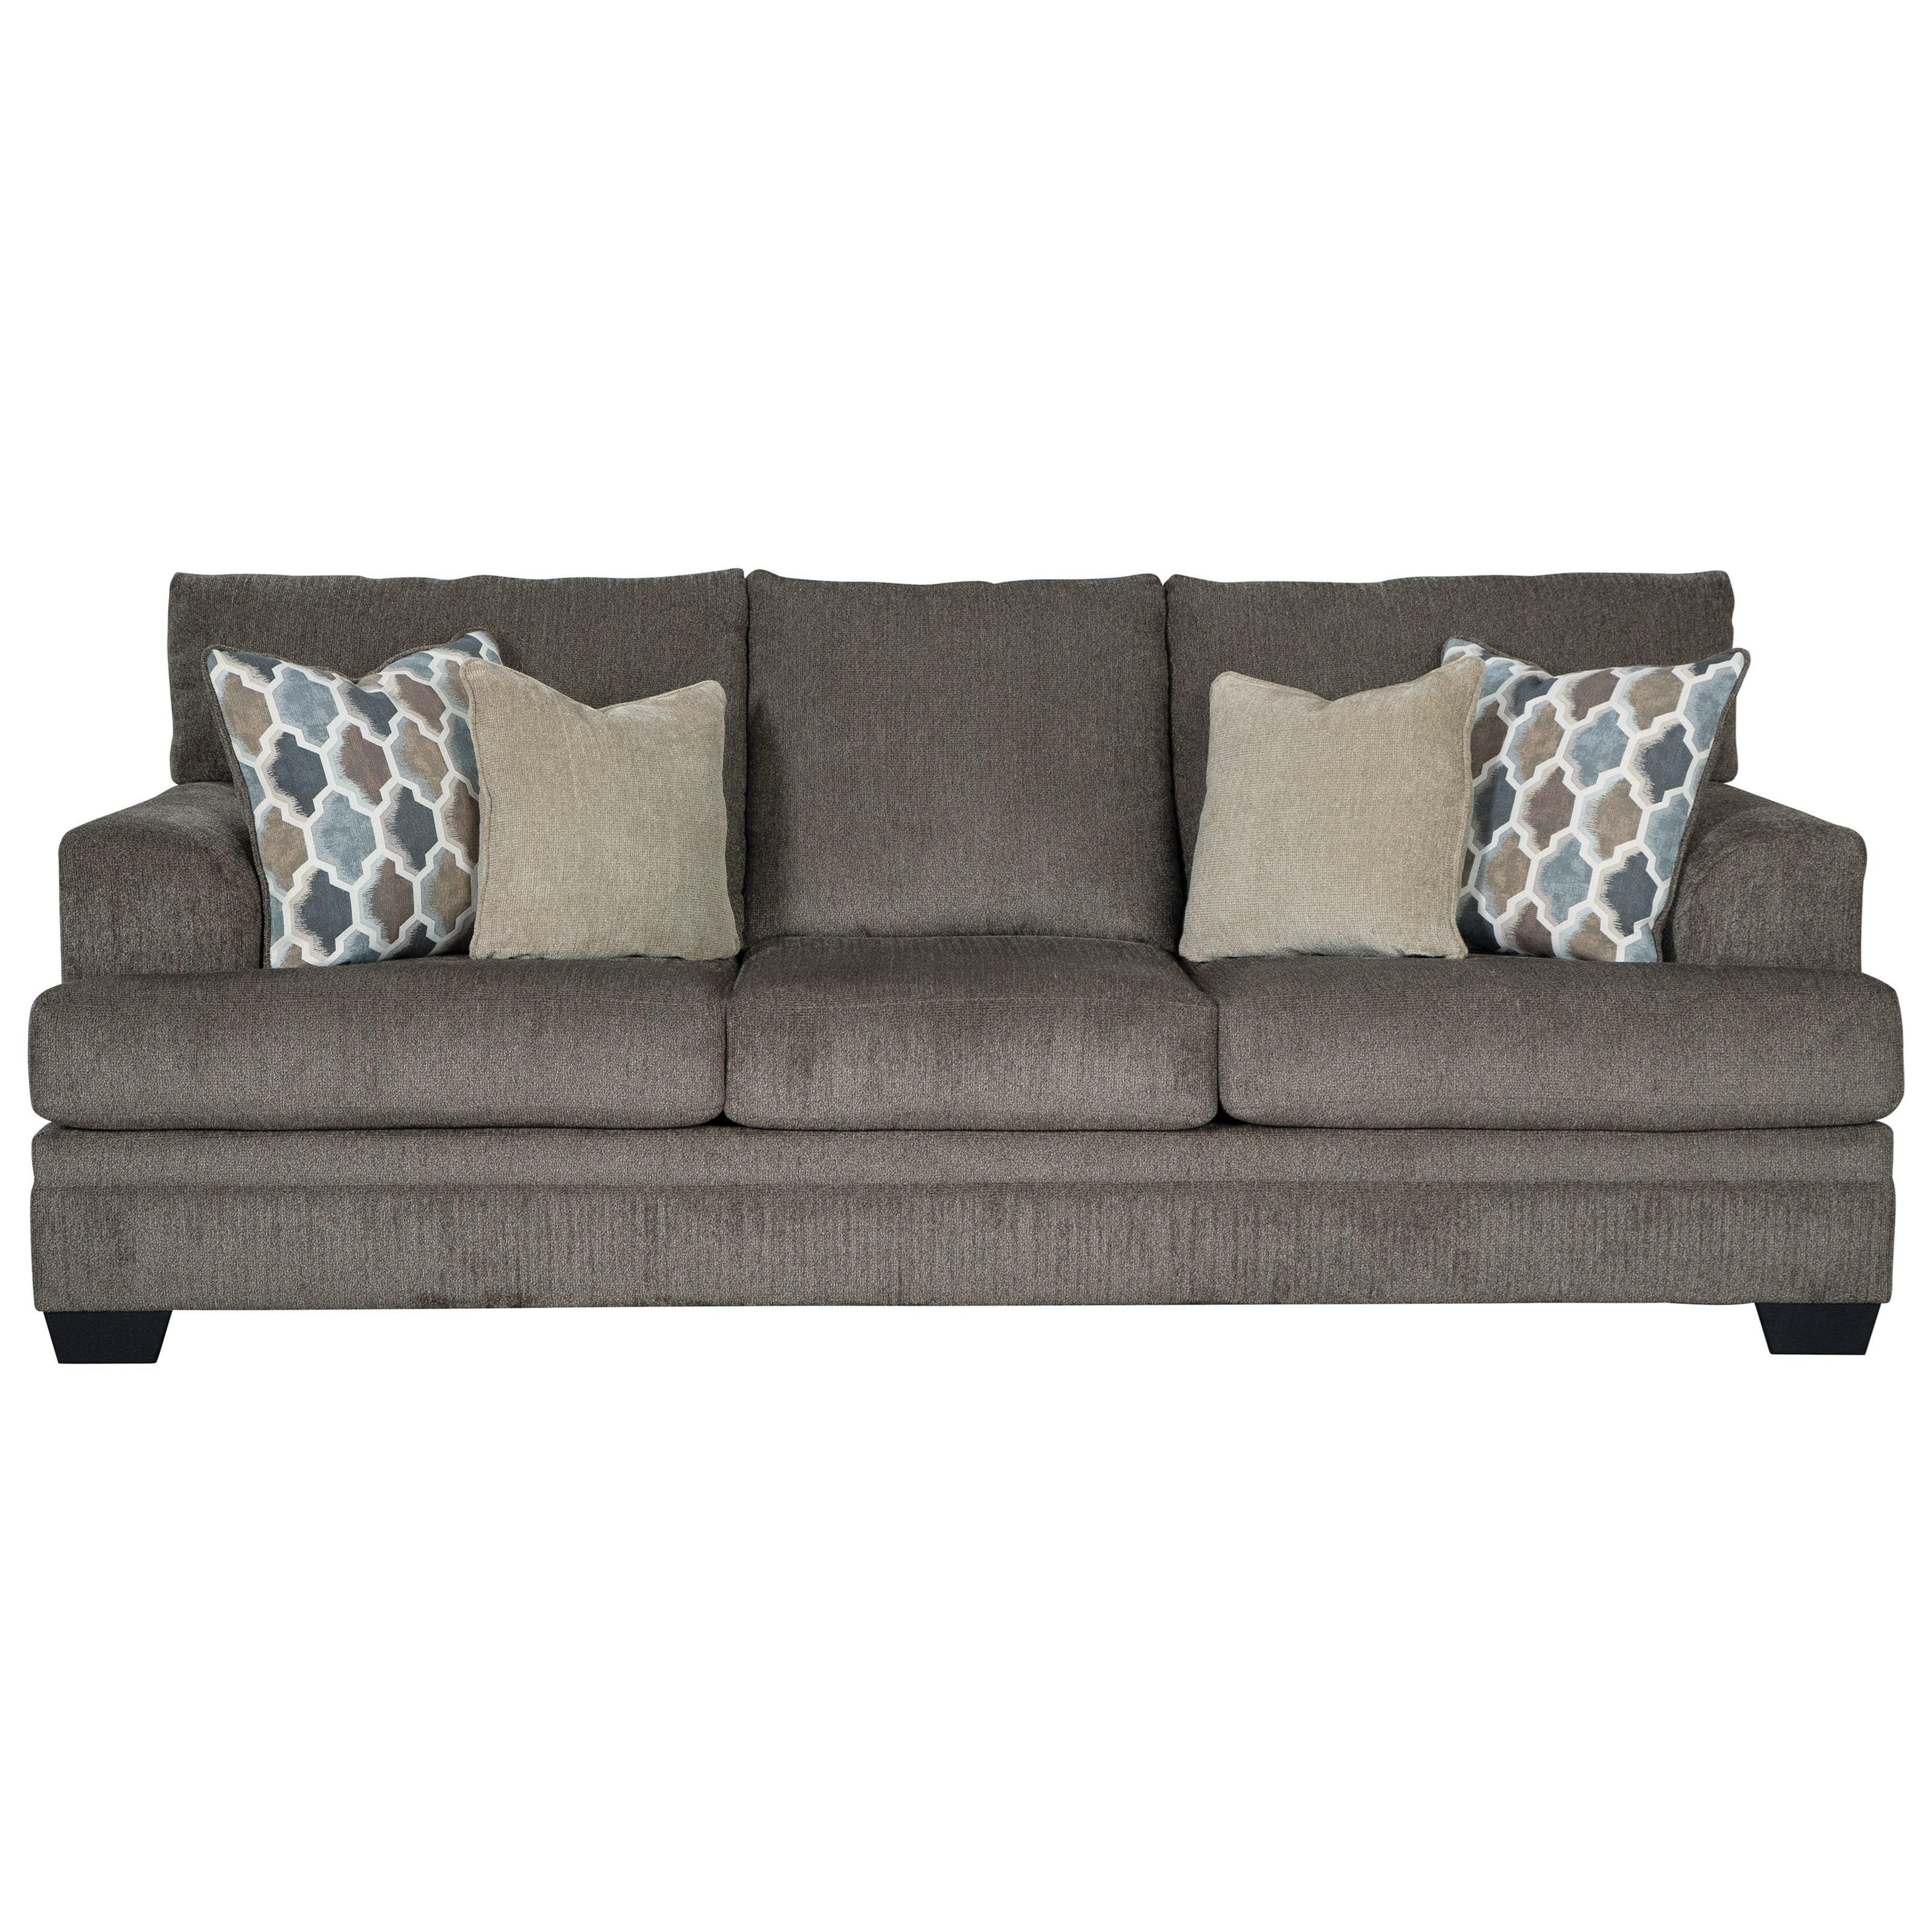 Dorsten Queen Sofa Sleeper by Signature Design by Ashley at Beck's Furniture